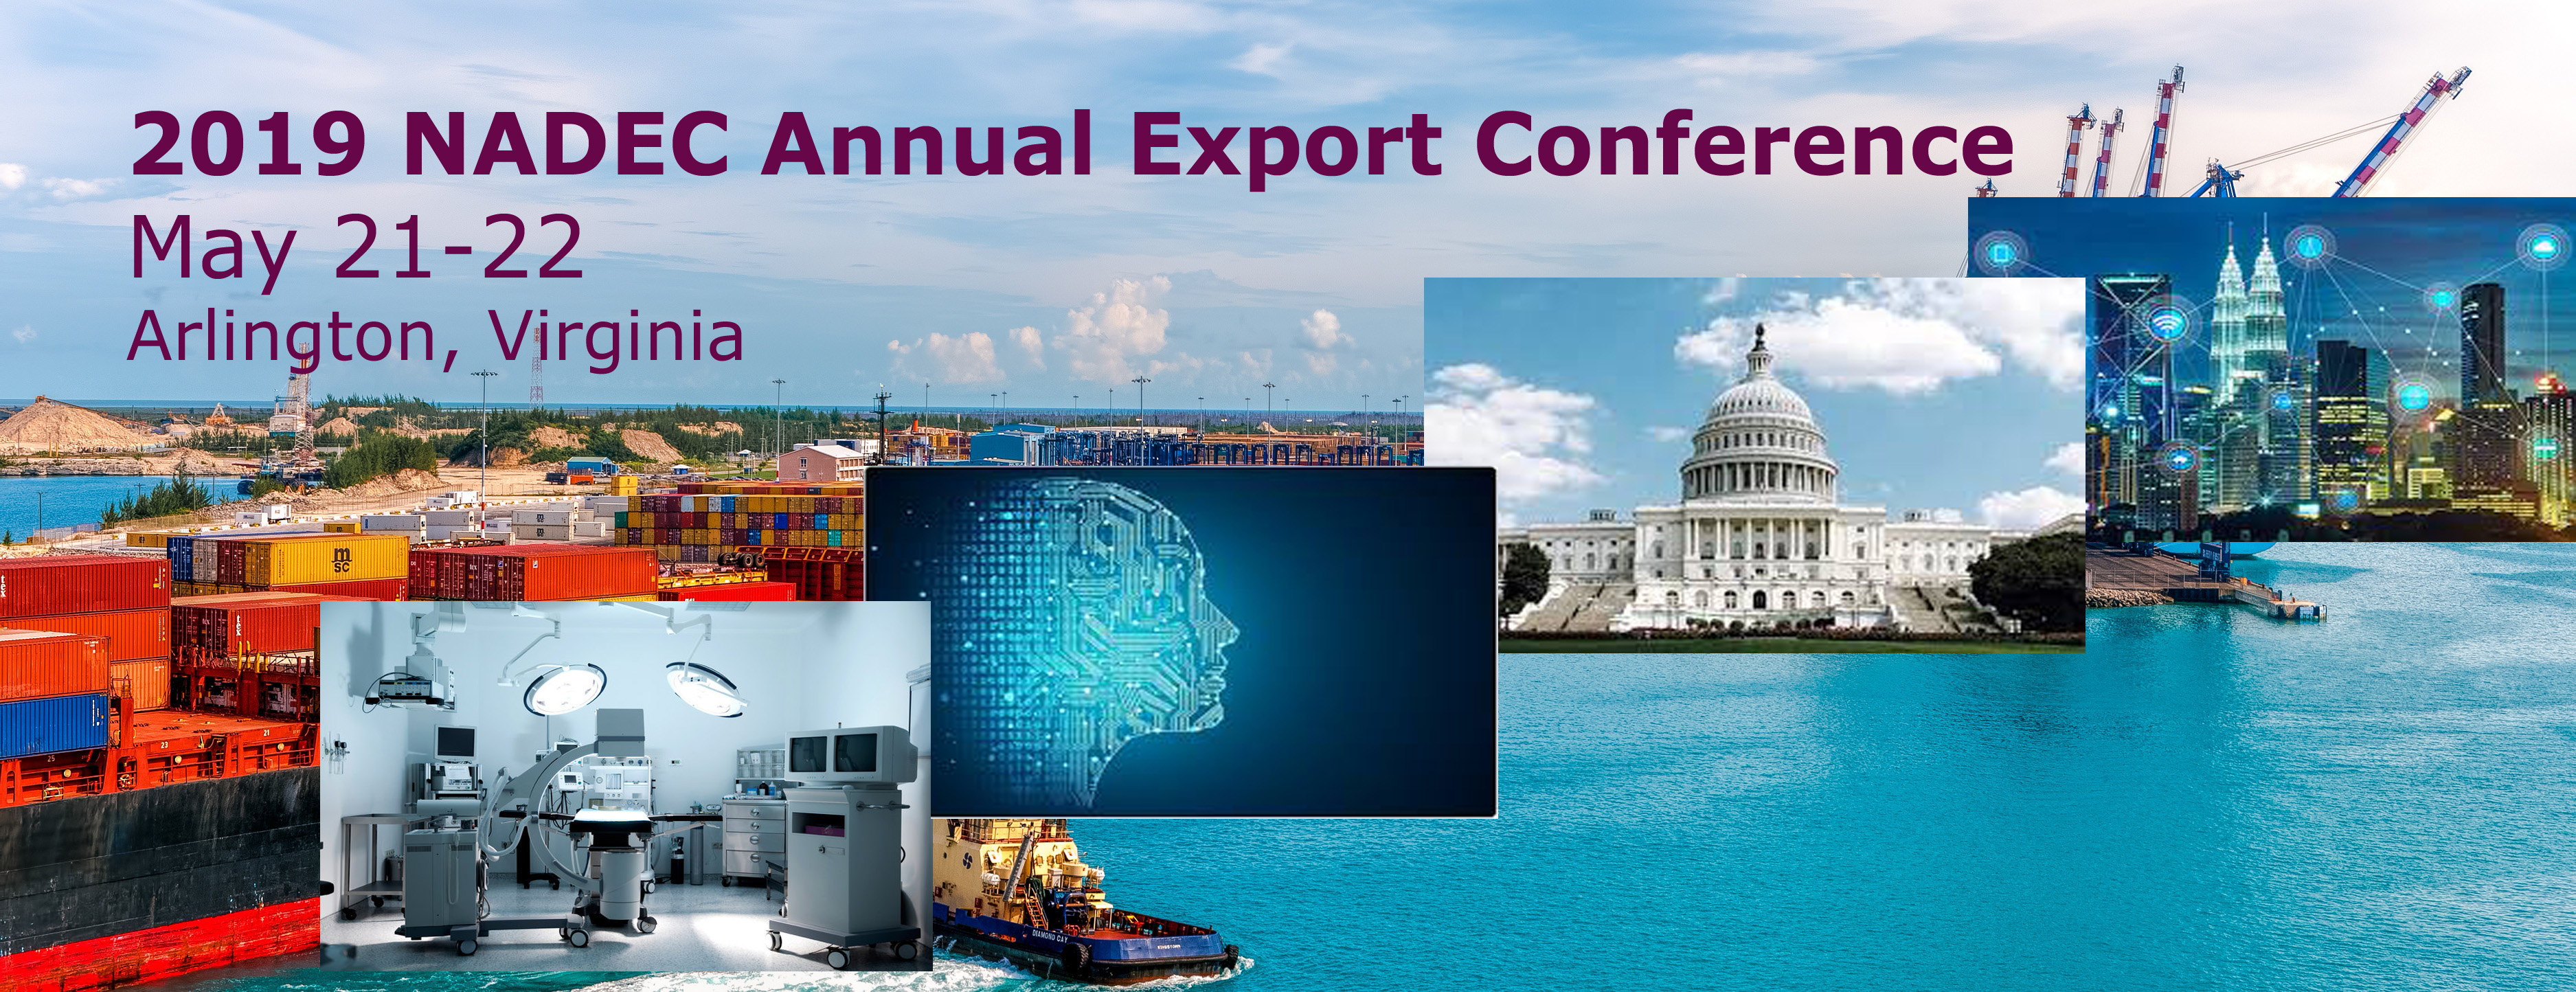 2019 Annual Export Conference